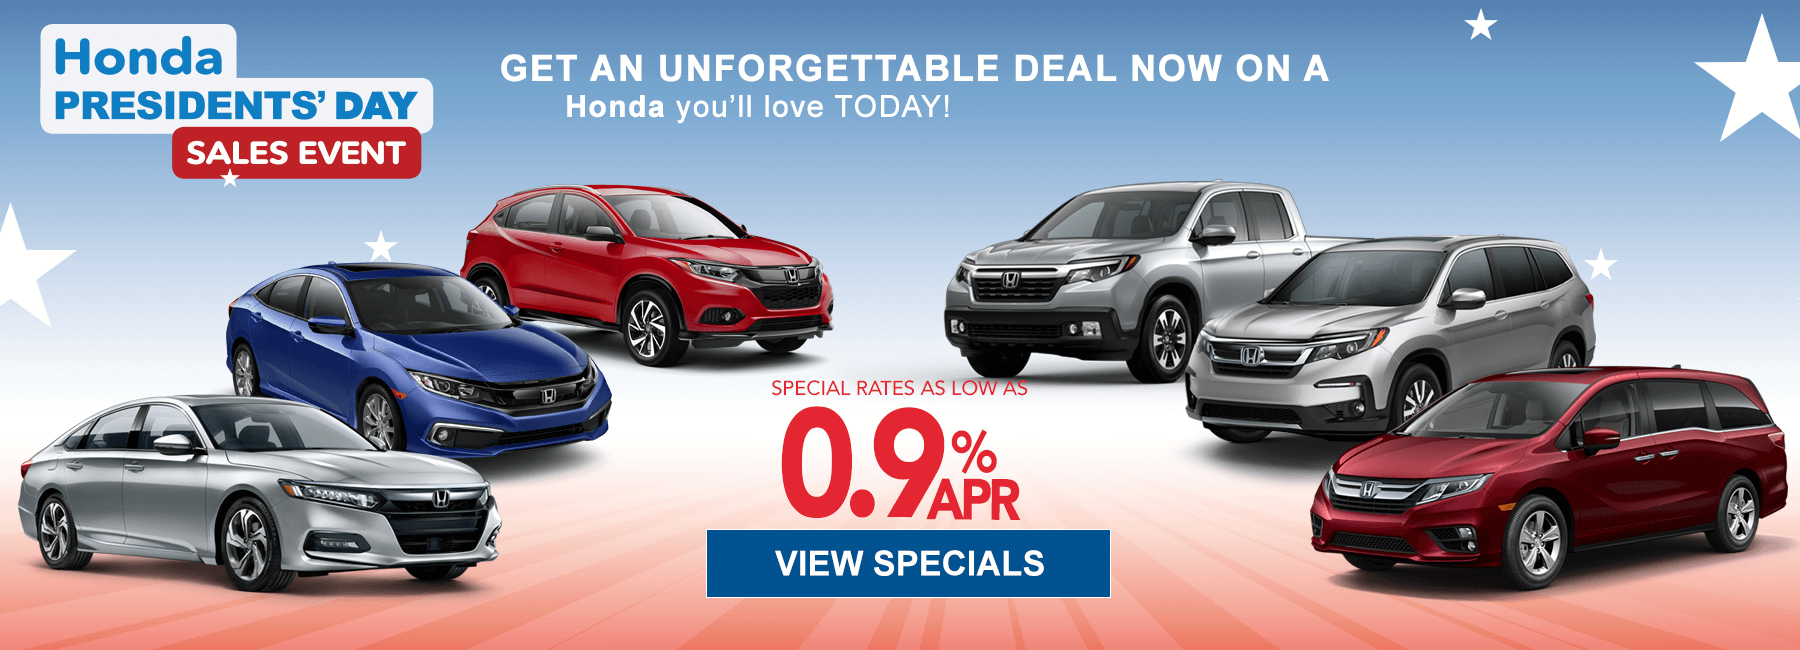 Honda Presidents Day sale img